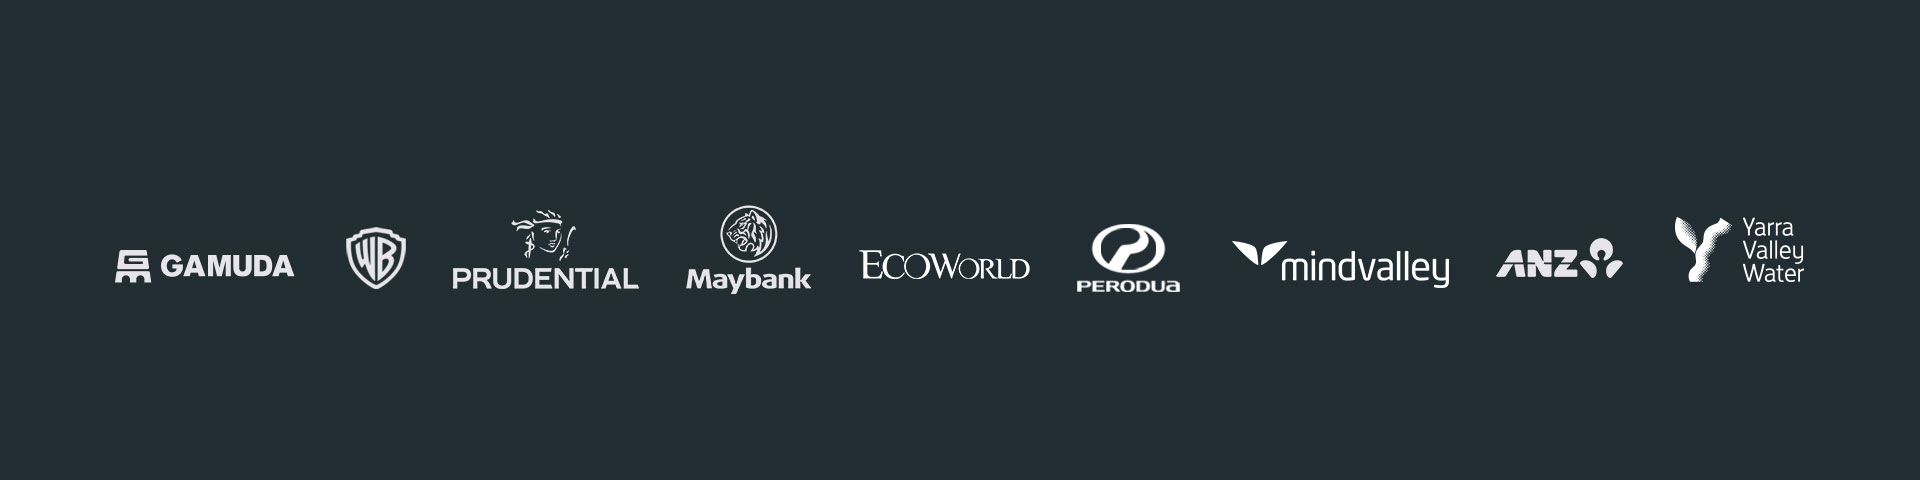 gamuda warner brother maybank ecoworld perodua mindvalley anz and yarra valley water proud client